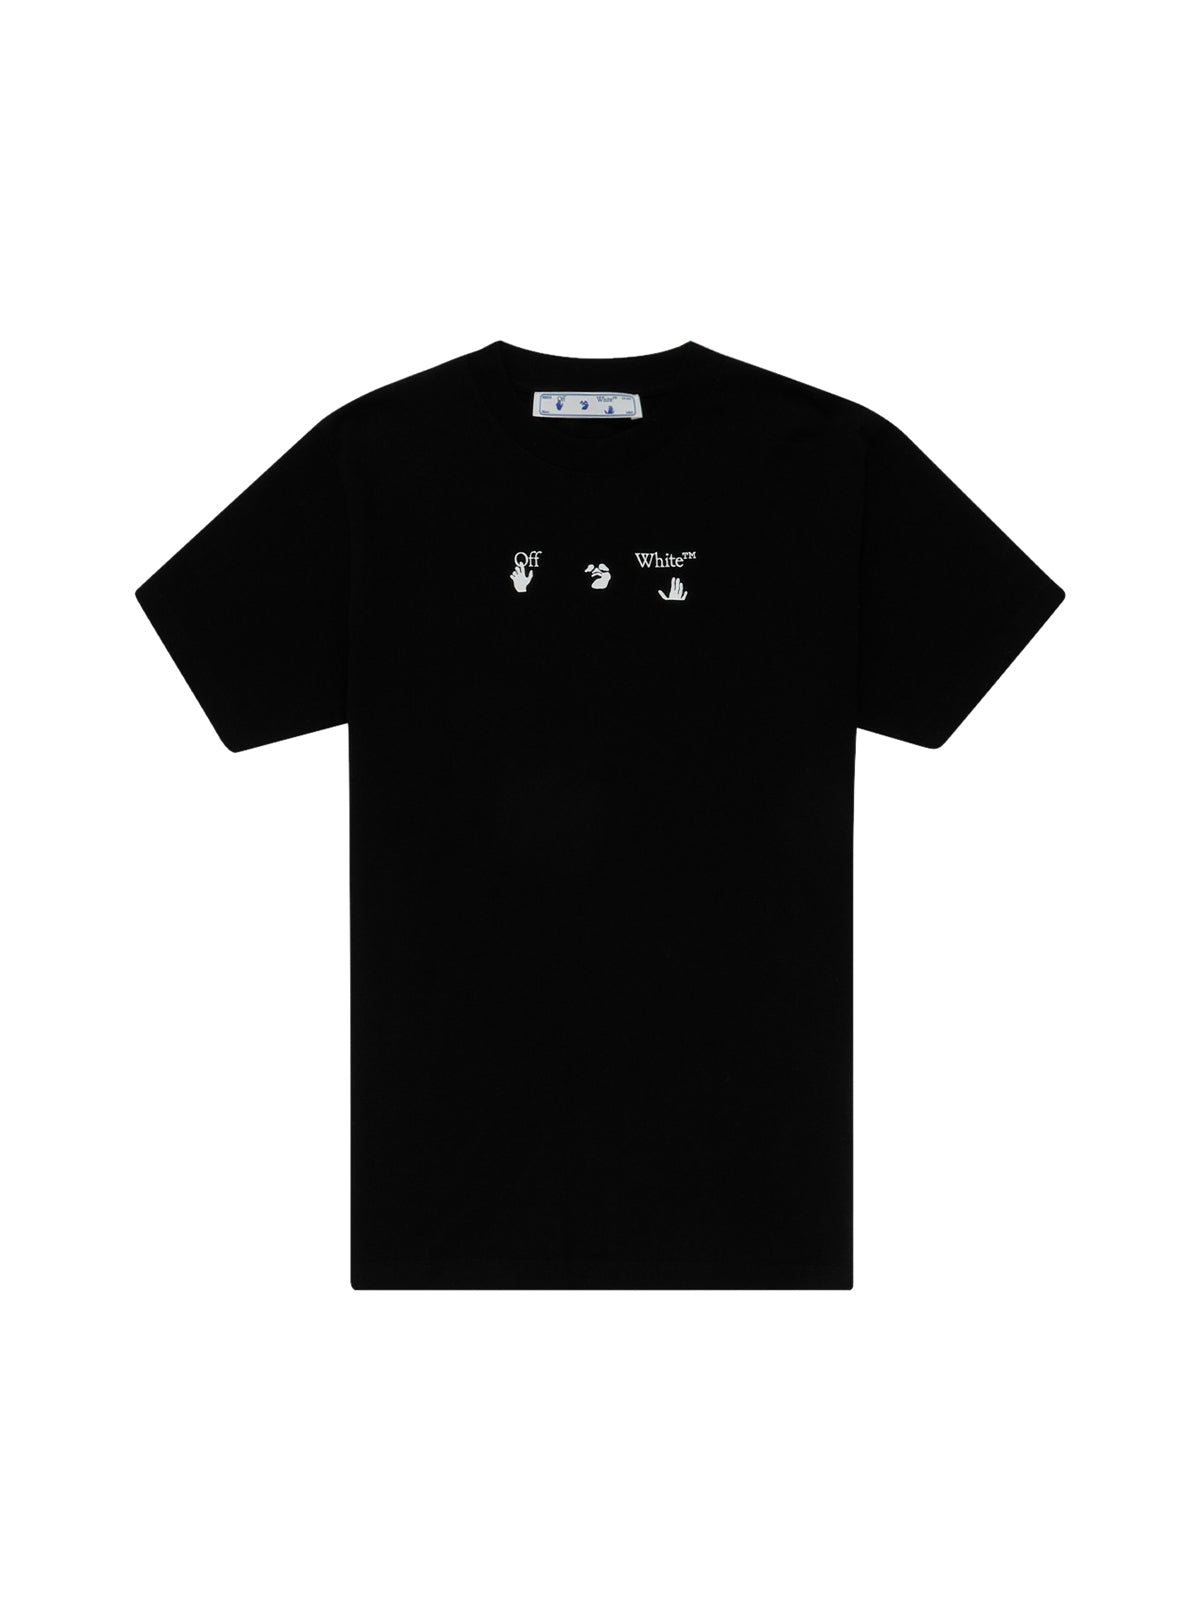 BLACK ARROW LOGO T-SHIRT